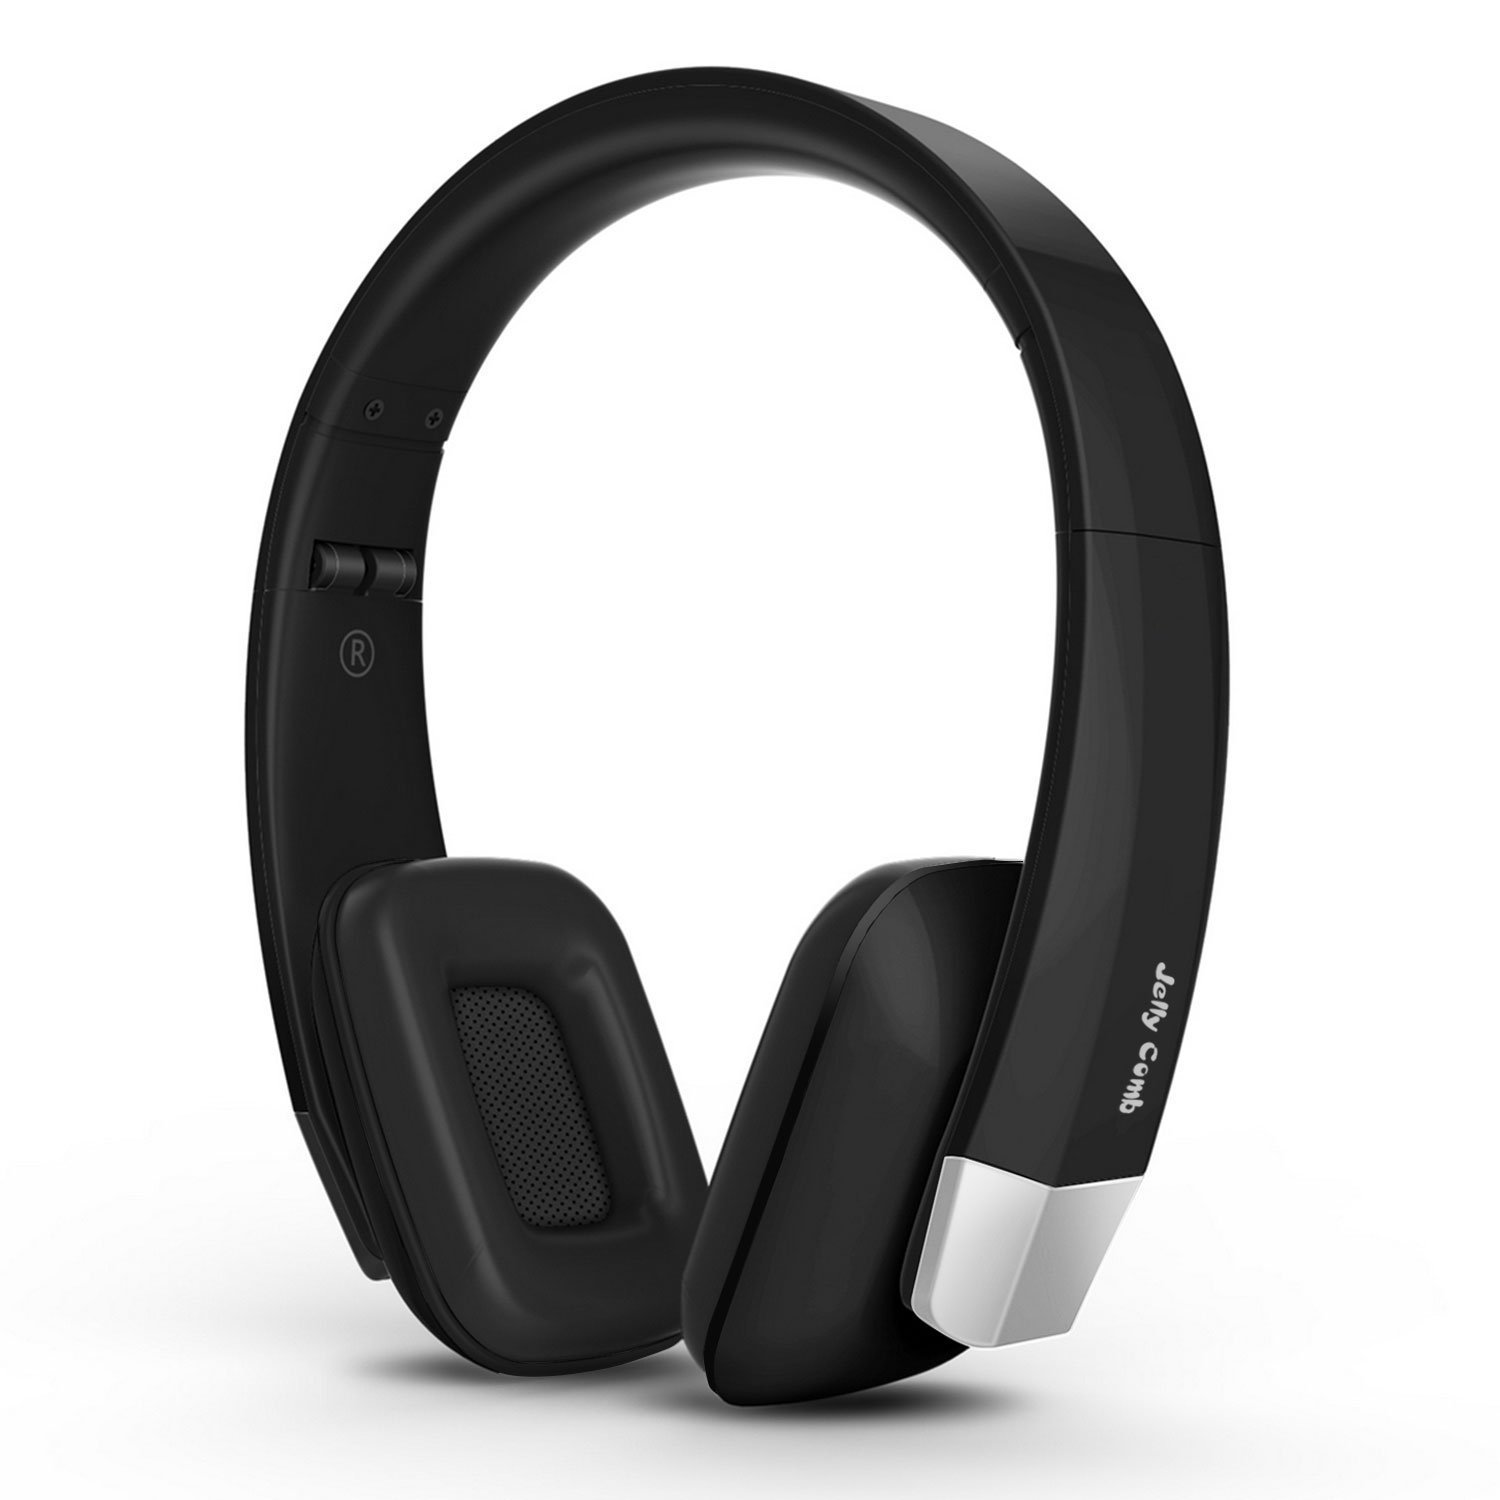 Wireless TV Headphones, Jelly Comb Wireless RF Over-Ear Stereo Headphones Headset Earphone with Transmitter for TV, Cellphone, Laptop, PC - Black and Silver